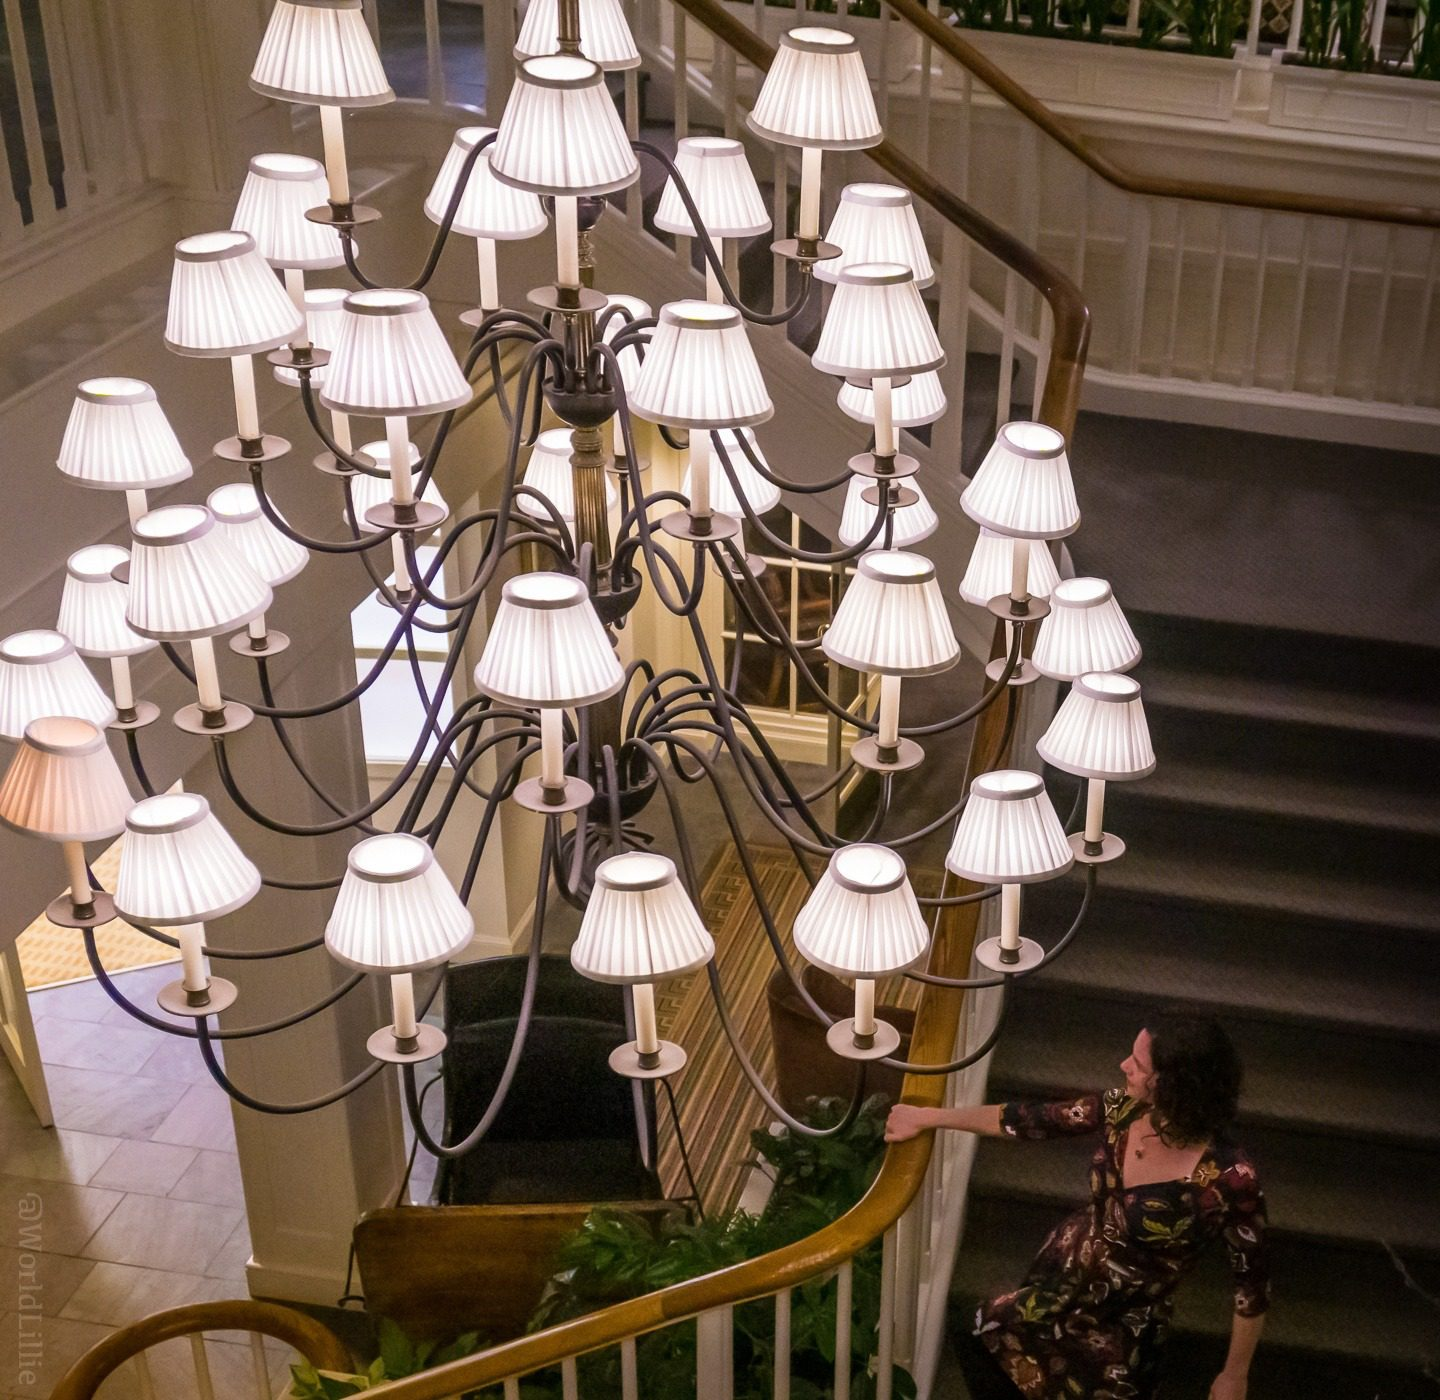 The grand chandelier and staircase of the Woodstock Inn.